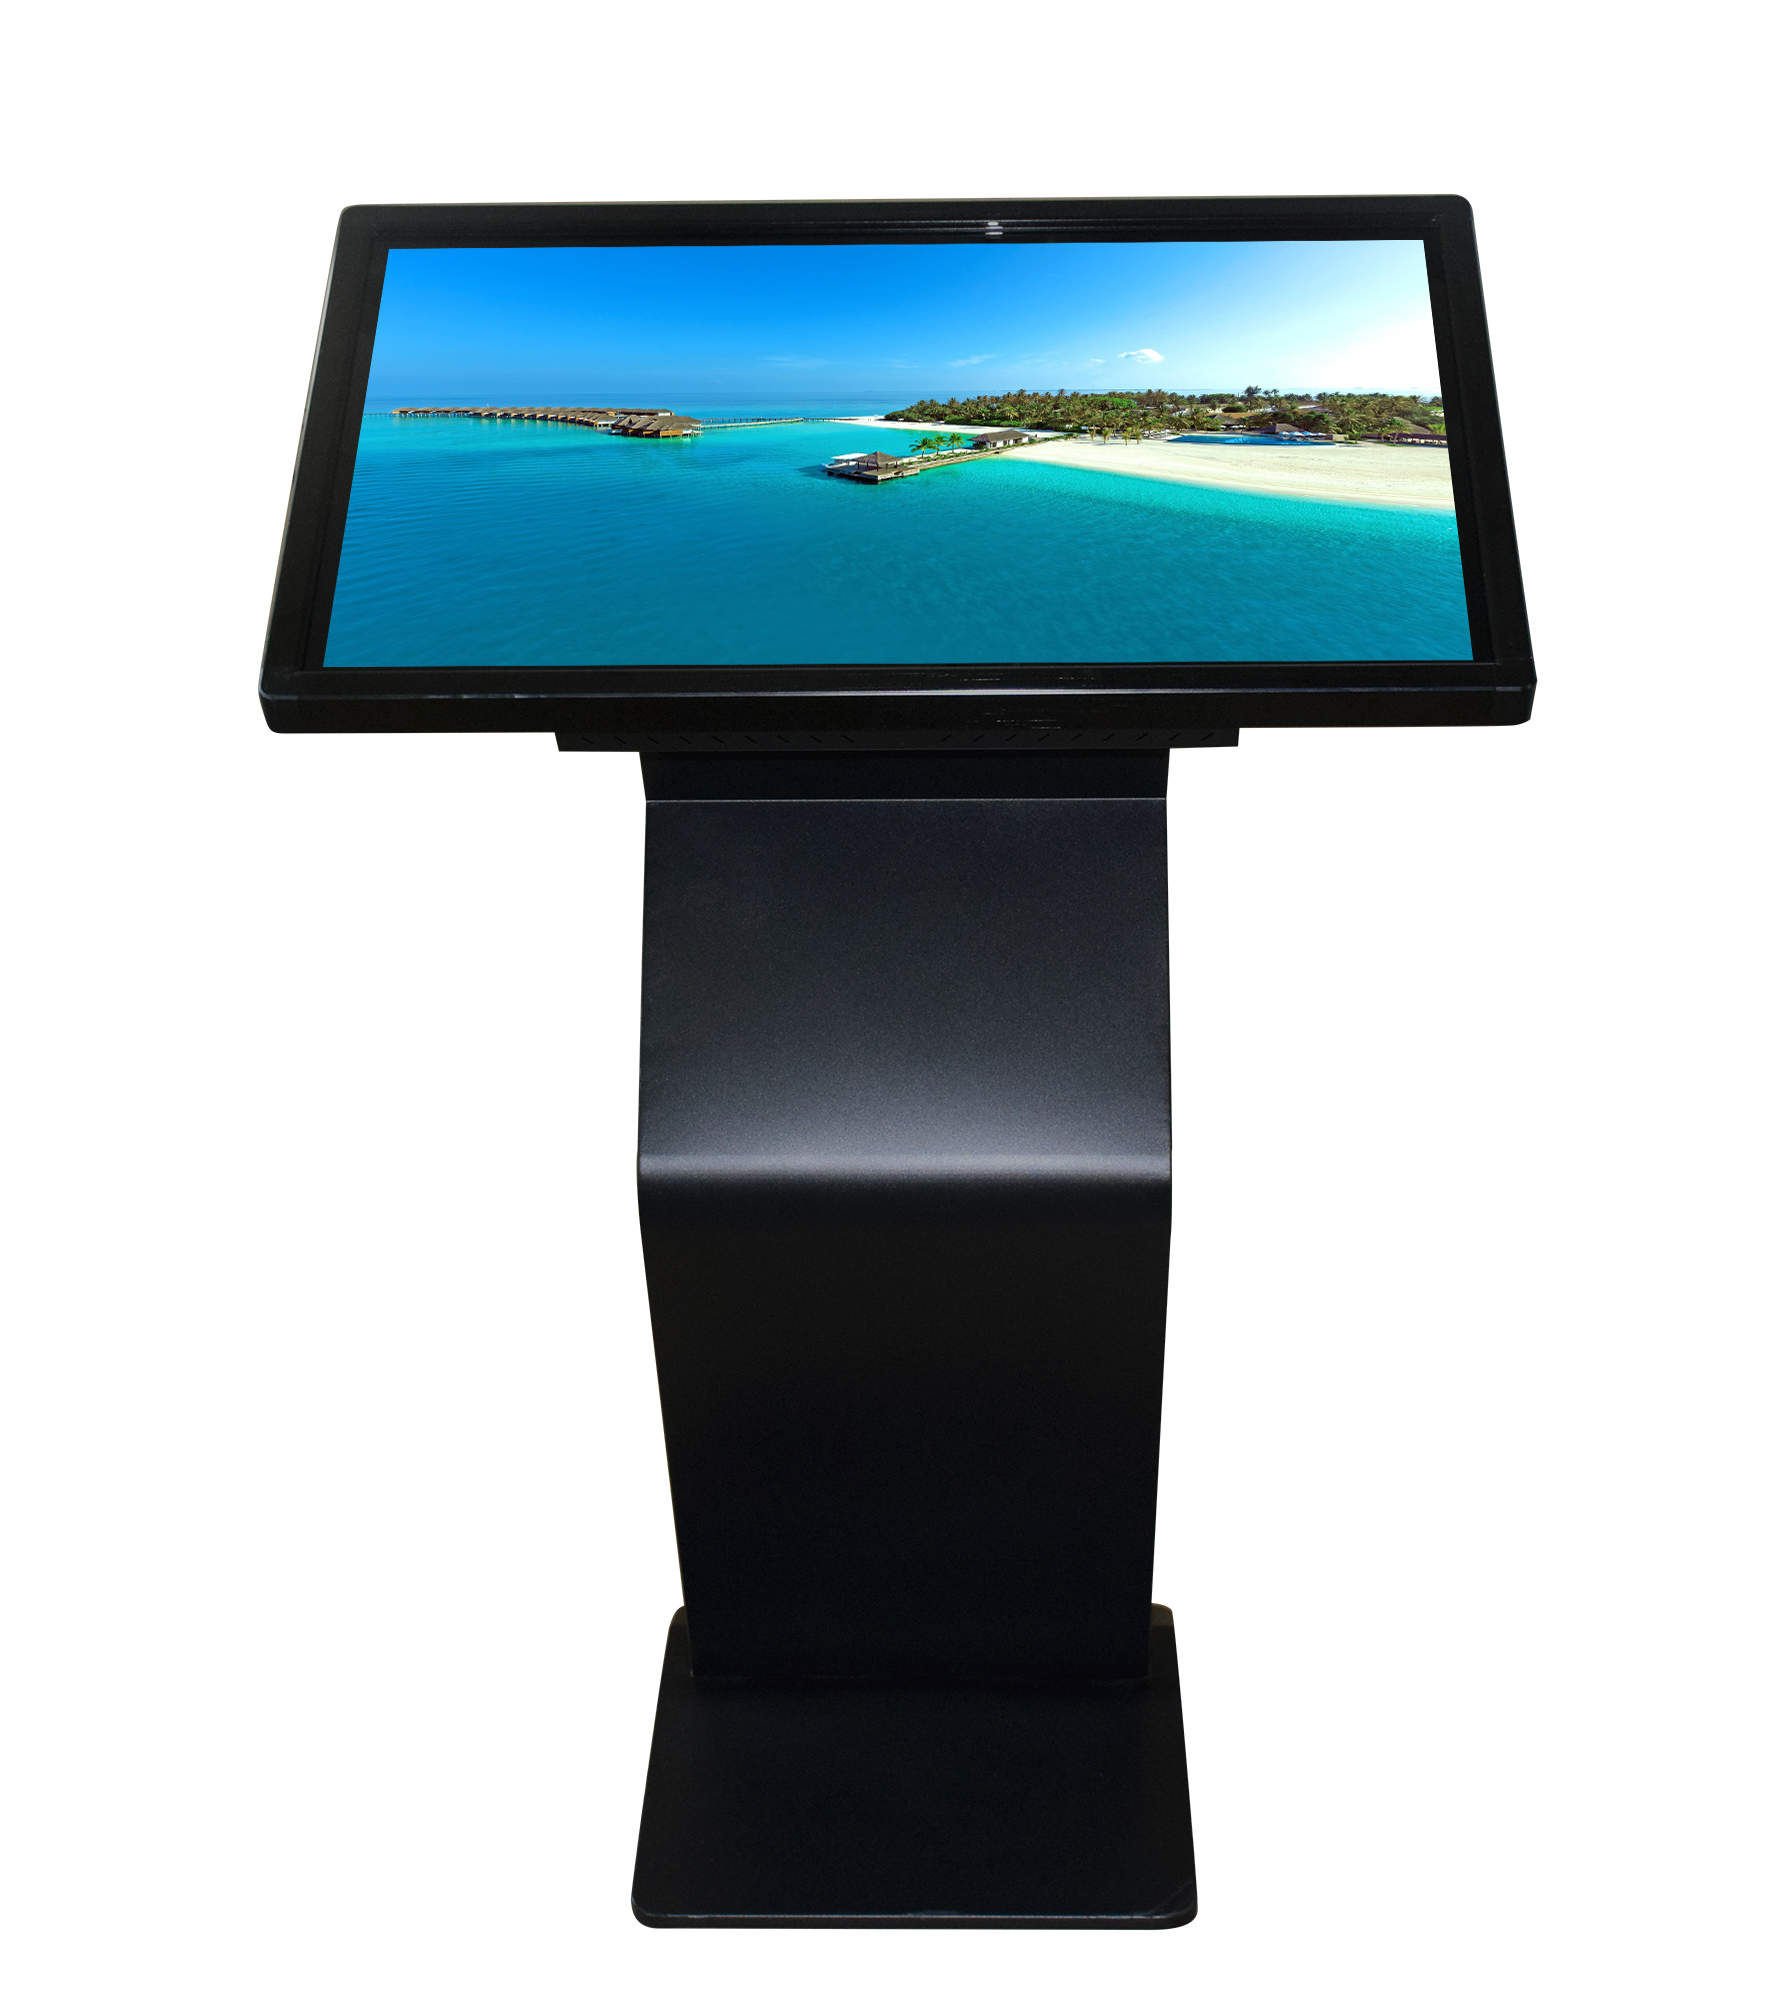 Commercial Interactive Display Retail Kiosk 350 Nits with Integrated Media Player